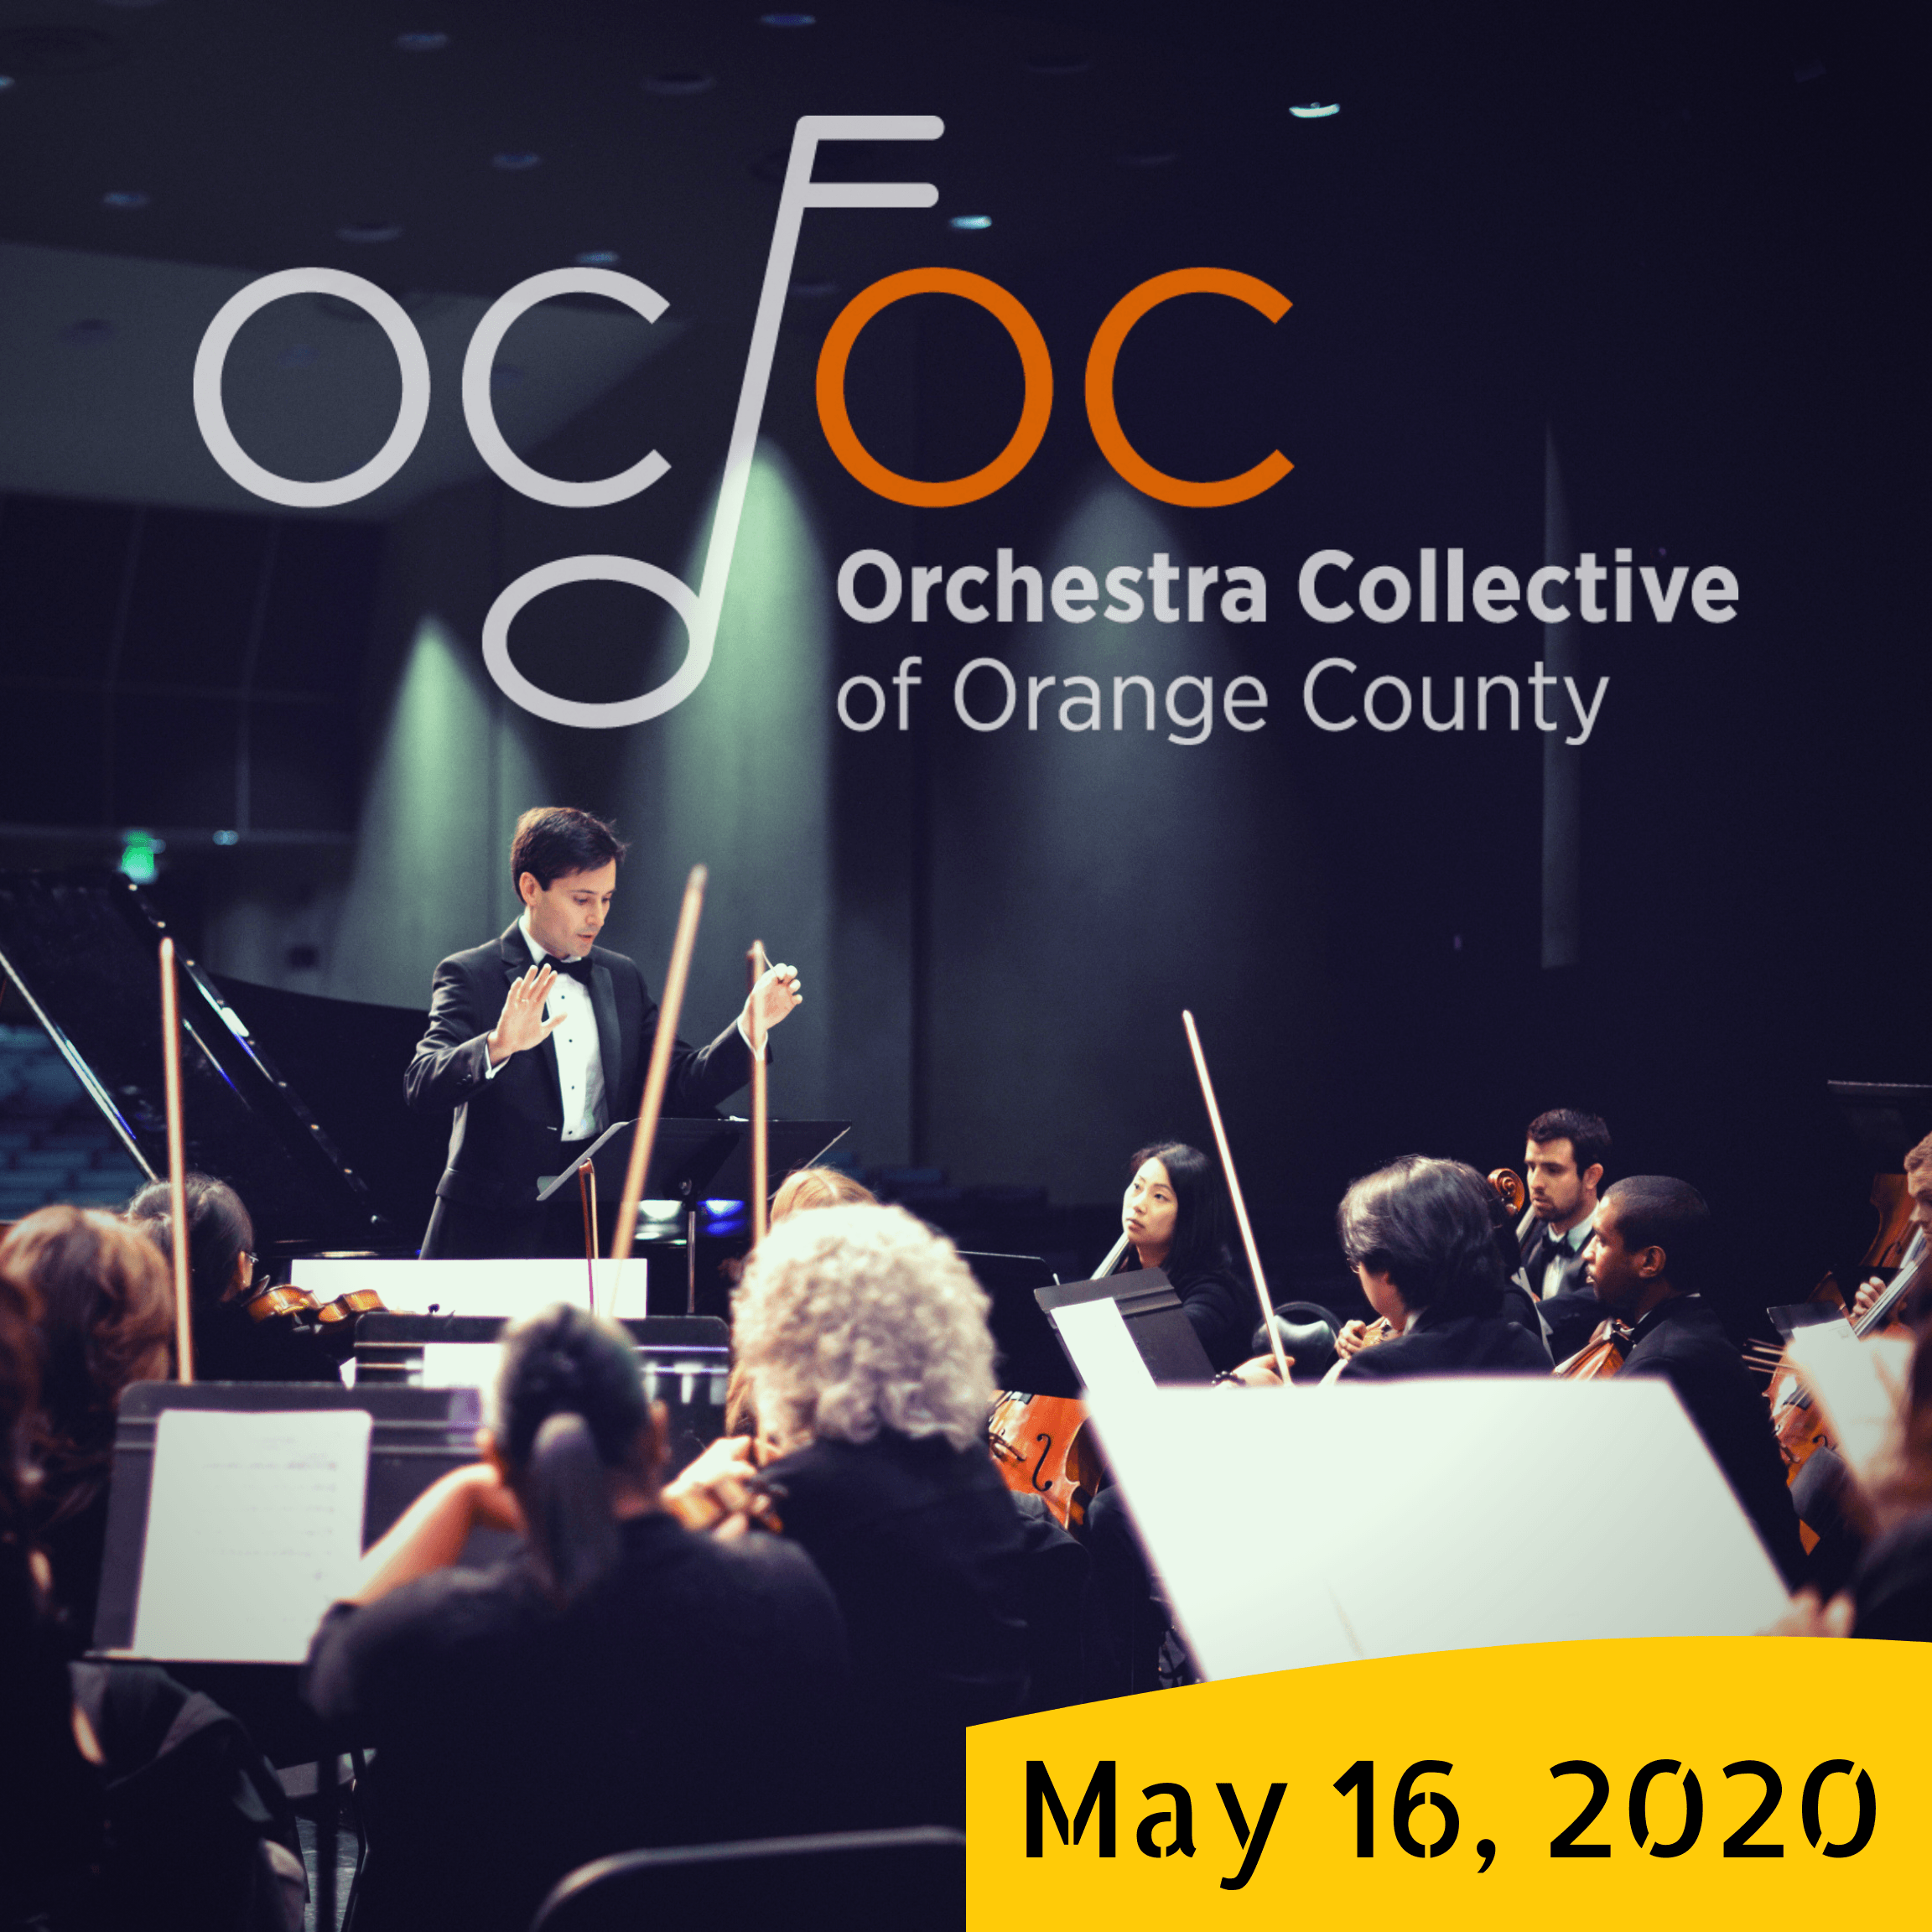 Orchestra Collective of Orange County March 29, 2020